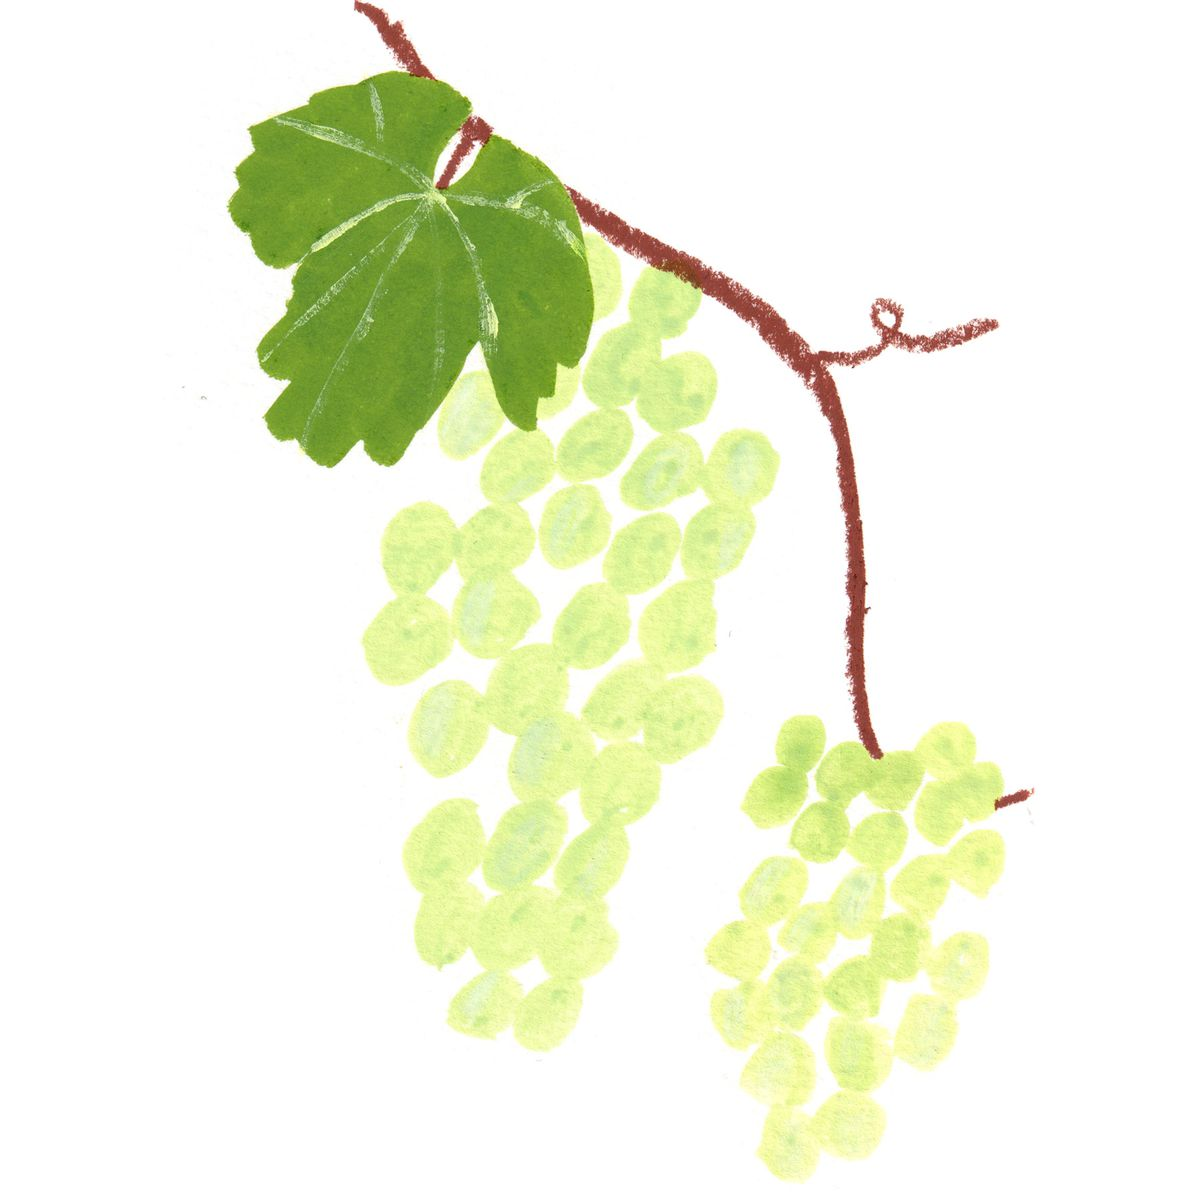 A drawing of green grapes and a green leaf on a stem.